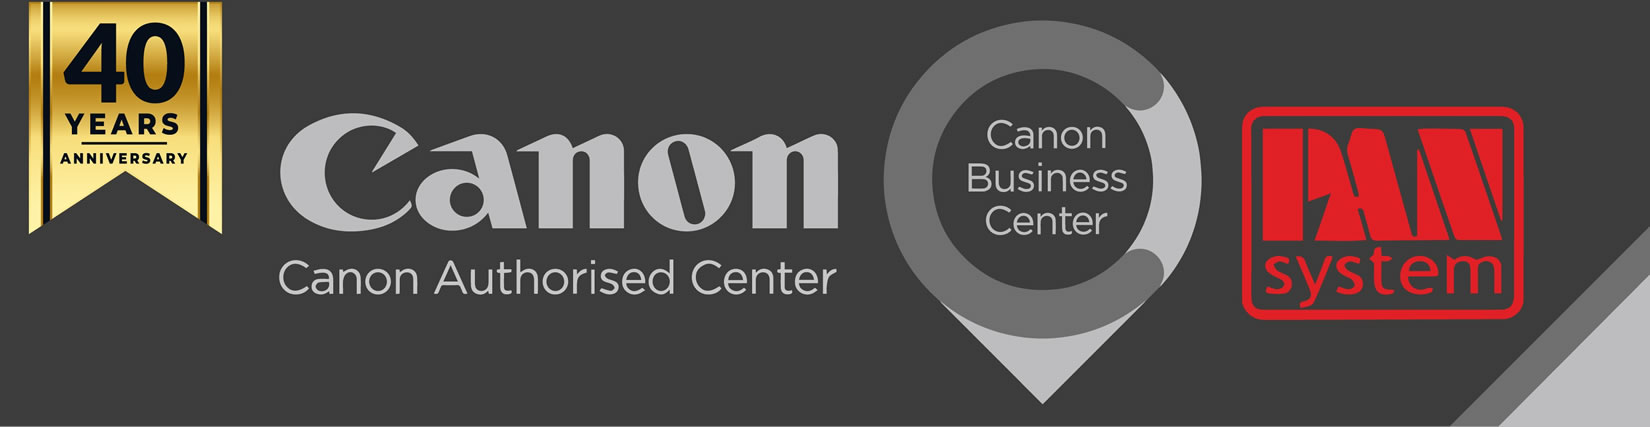 CANON Business Center - Pansystem S.r.l.